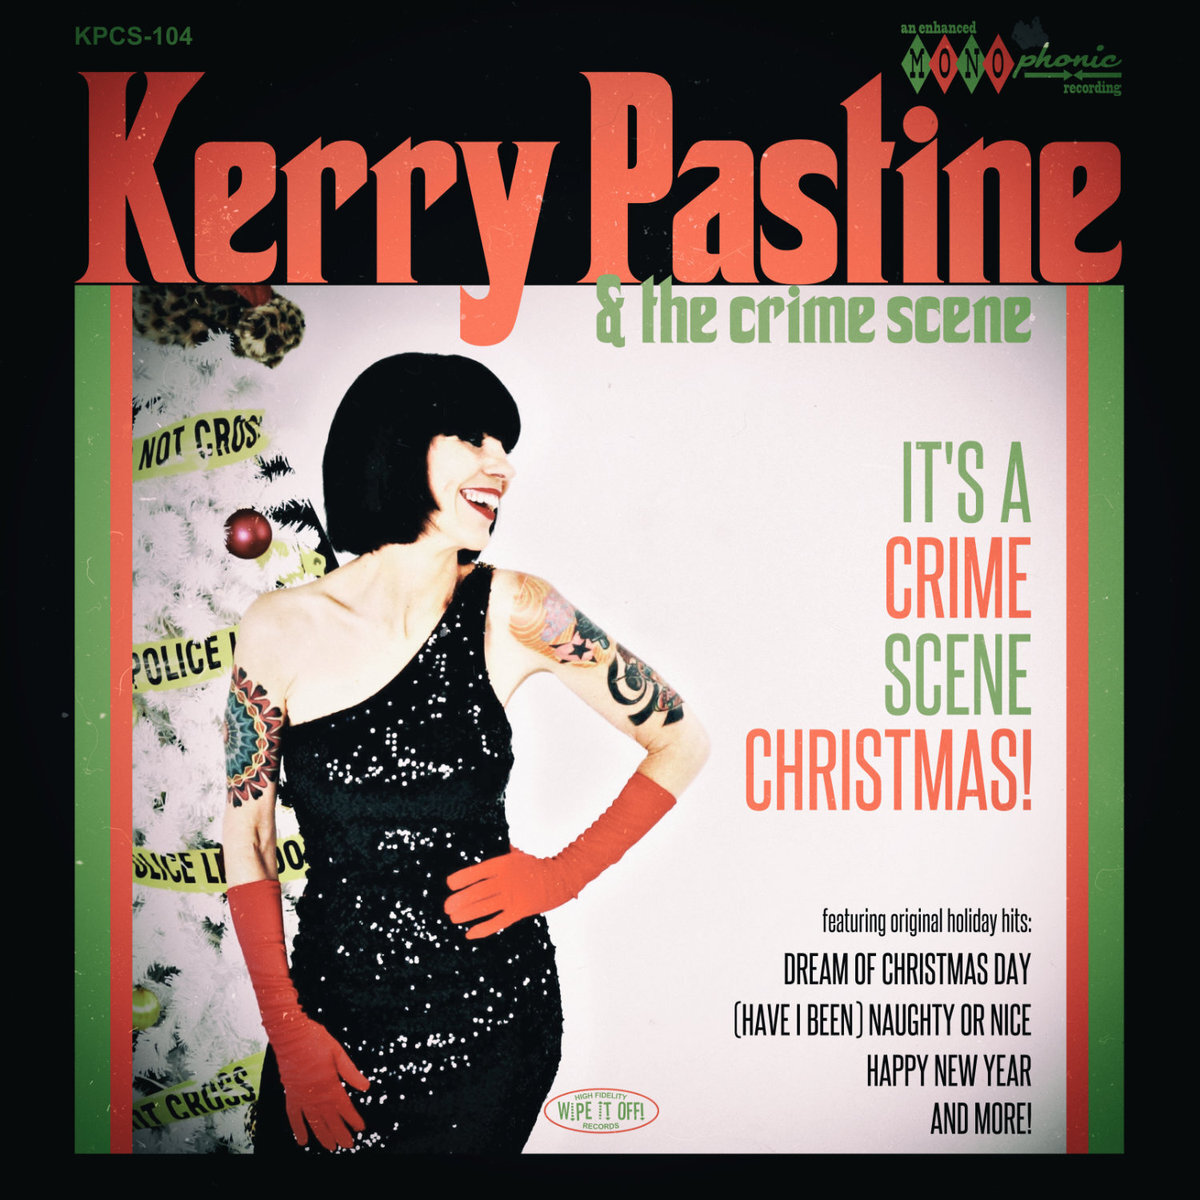 """It's a Crime Scene Christmas! (11/2015) - The cheeky holiday record that has turned into an annual series of Christmas shows. """"Every song on It's A Crime Scene Christmas is an original and every one is a winner. The sounds are, at once, familiar and fresh, vintage and cutting edge. That's not that easy to pull off… Kerry and company leave the bigger names in the dust."""" - Stubby's House of Christmas"""